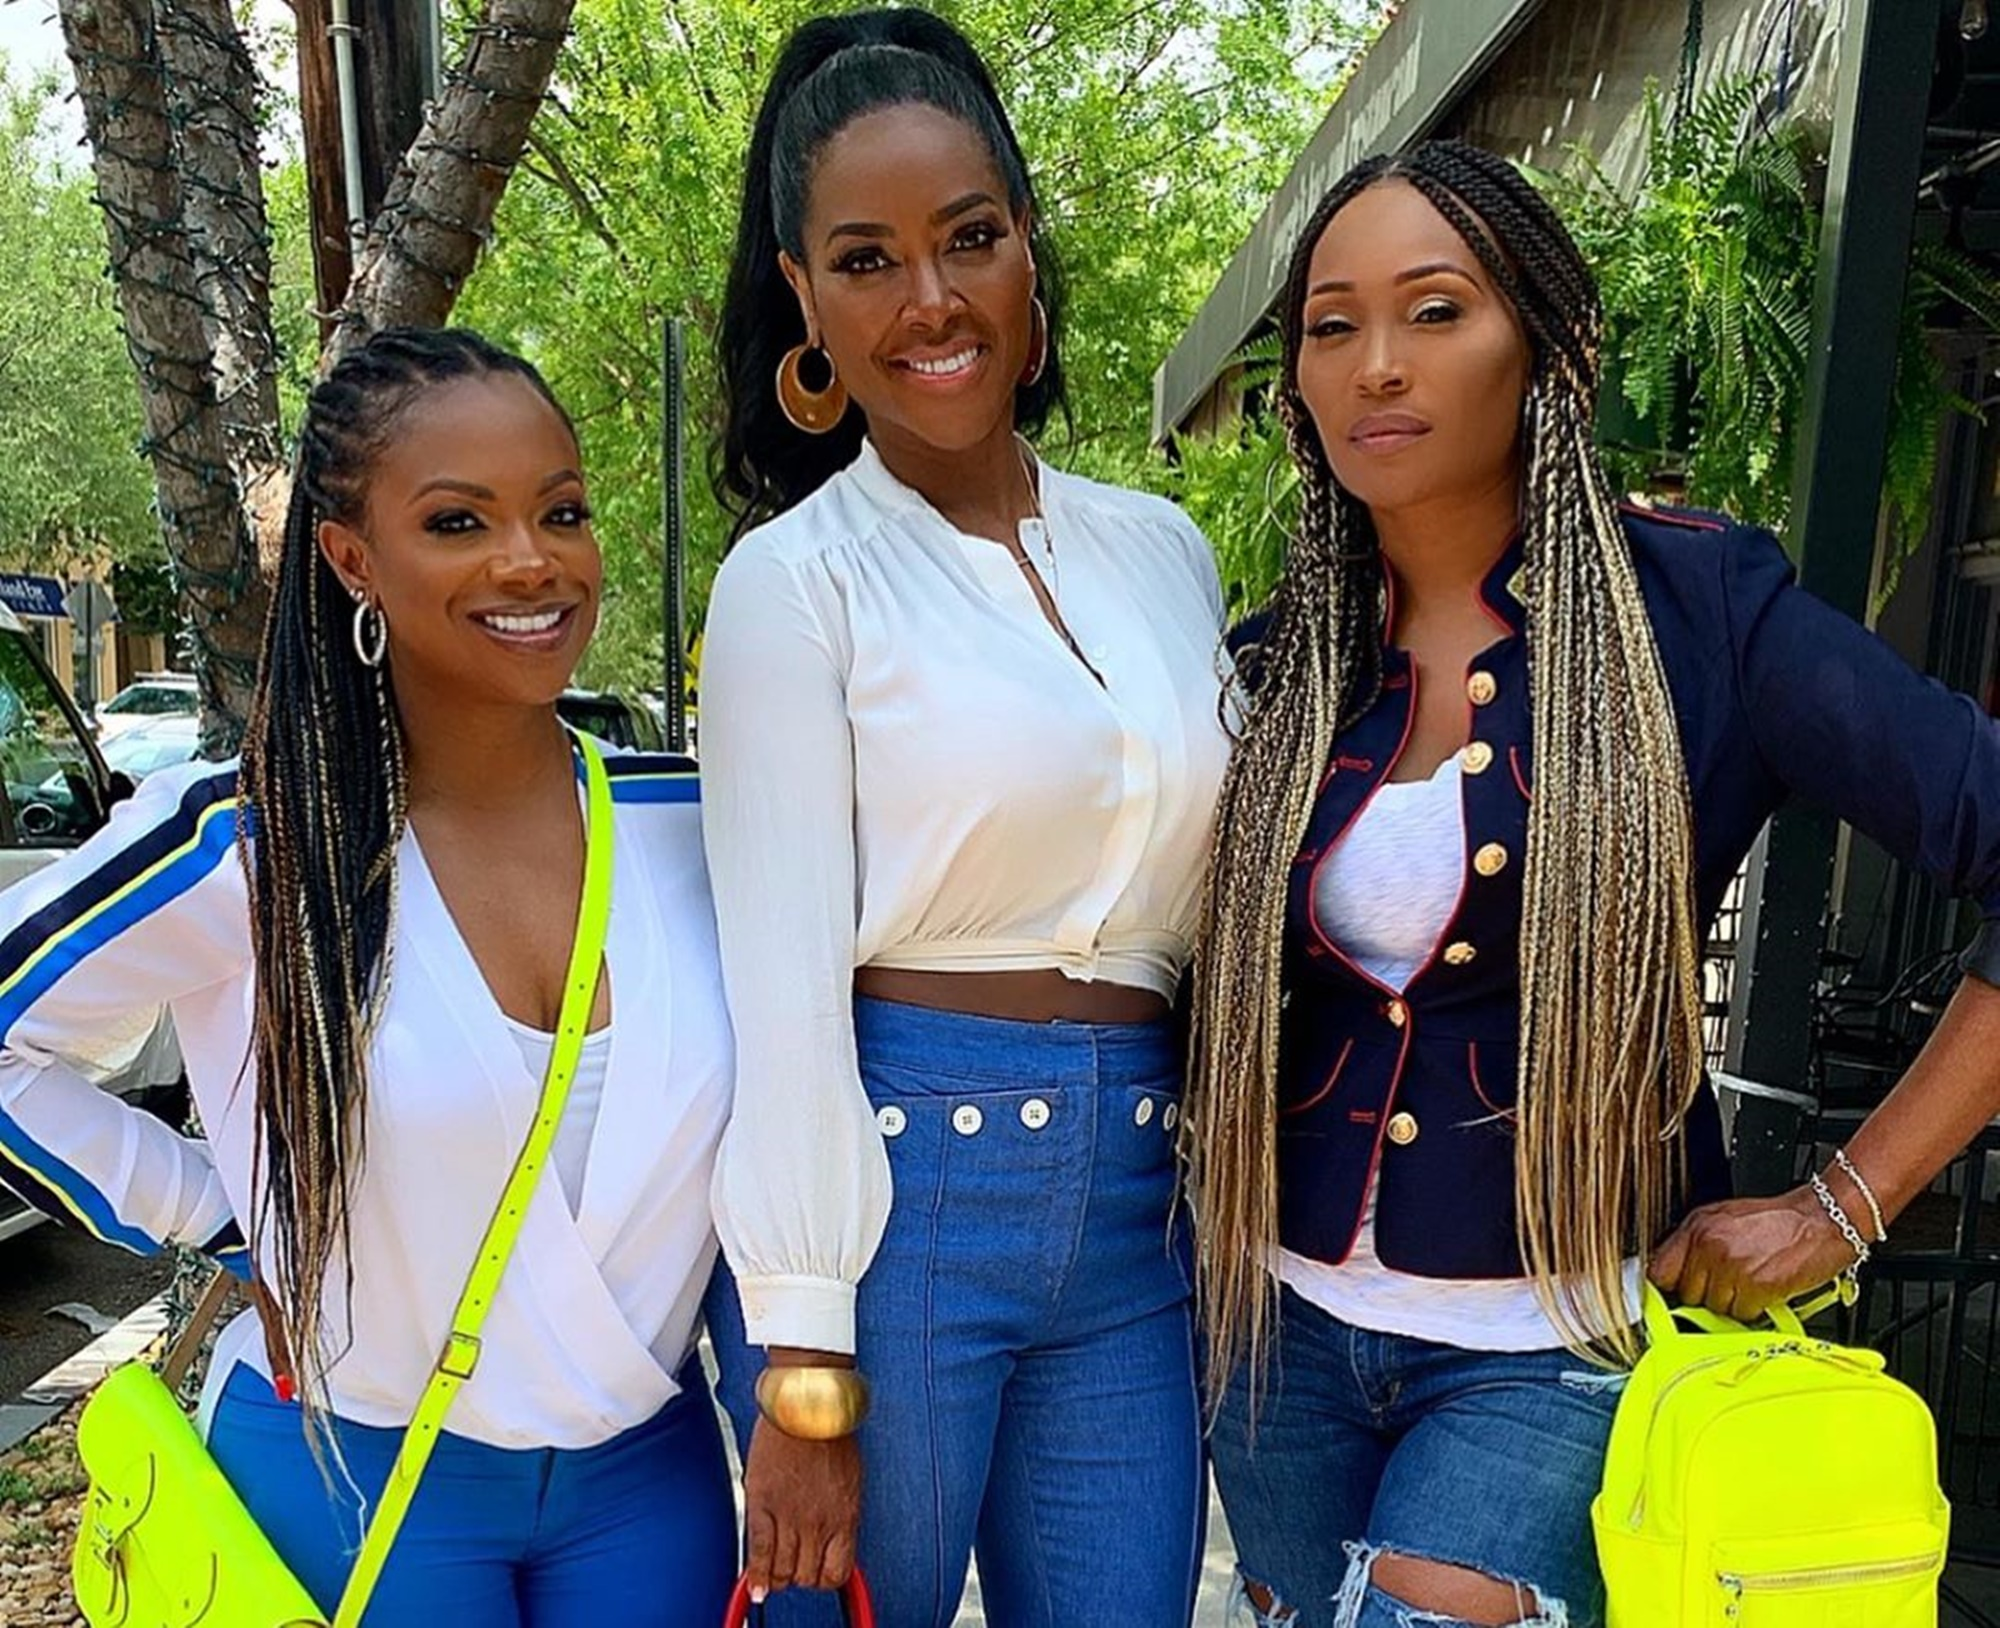 Eva Marcille Shows Support For Cynthia Bailey, Kenya Moore And Kandi Burruss' Businesses